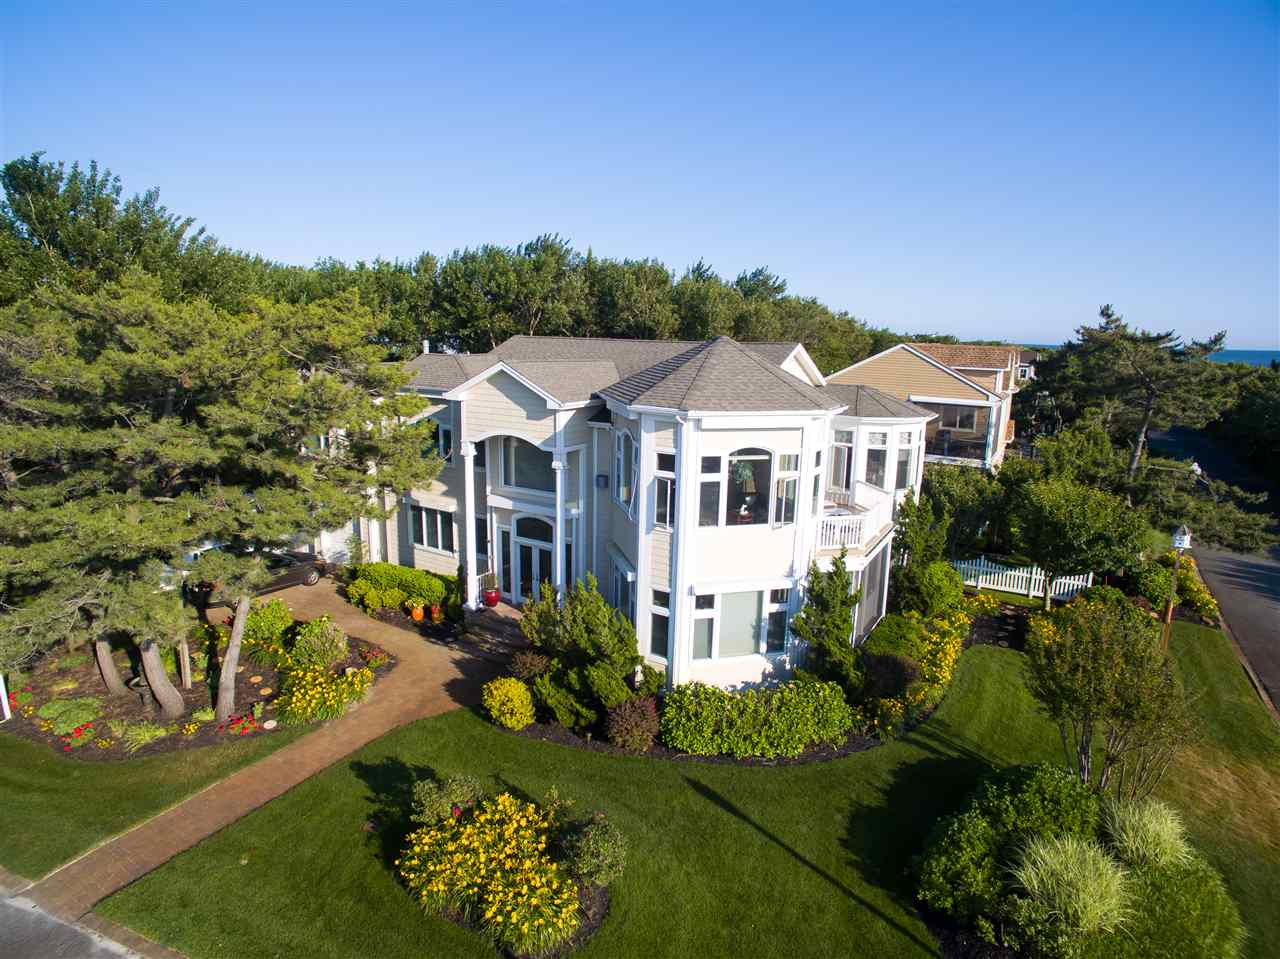 217 Alexander, Cape May Point